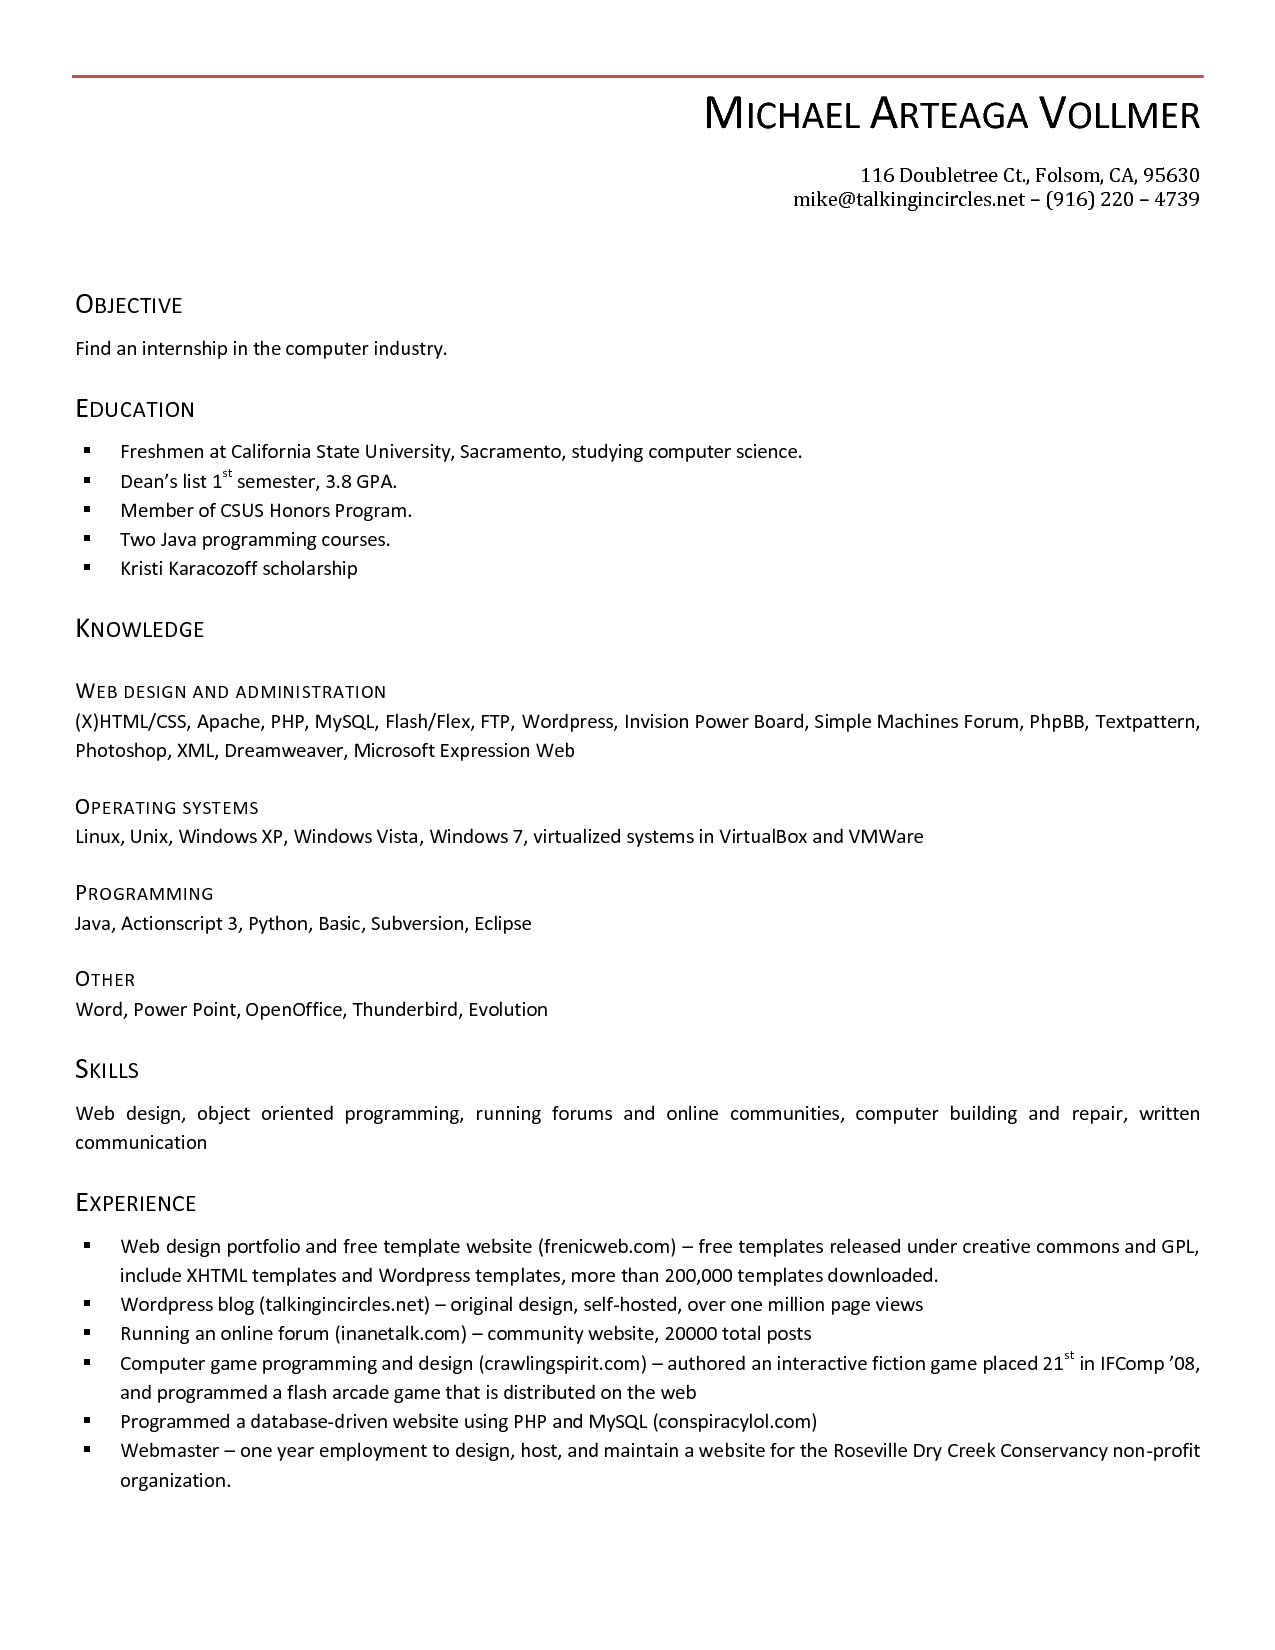 Open Office Template Resume Resume Templates For Openoffice Hdresume Templates Cover Letter